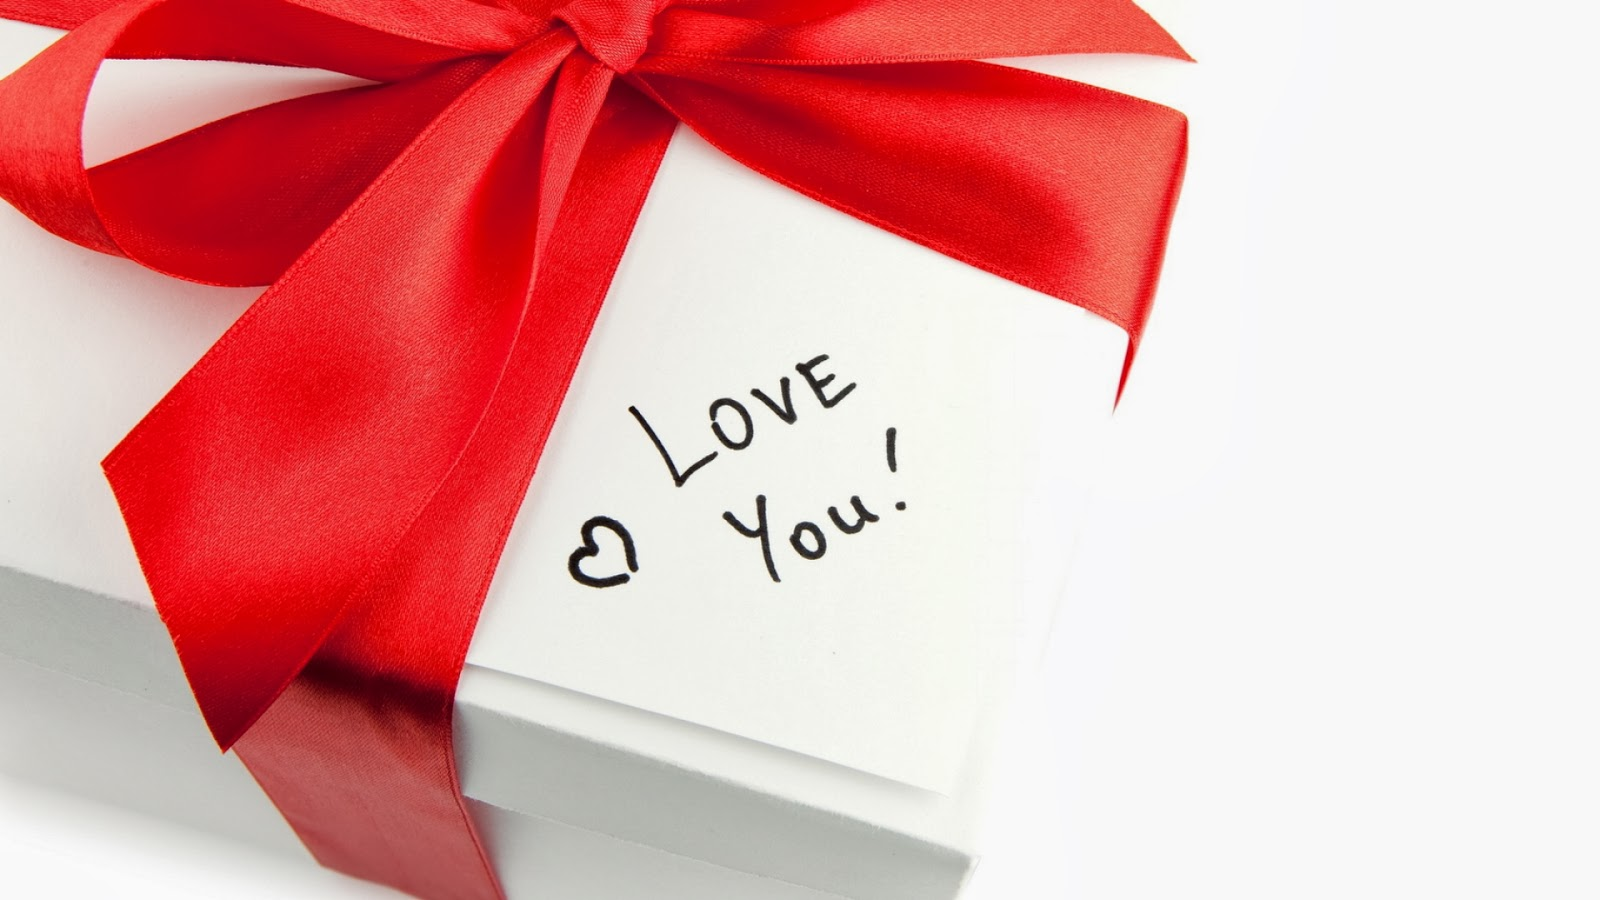 Love Wallpaper Gift : I love you Text Pictures for Facebook HD Images Free ...